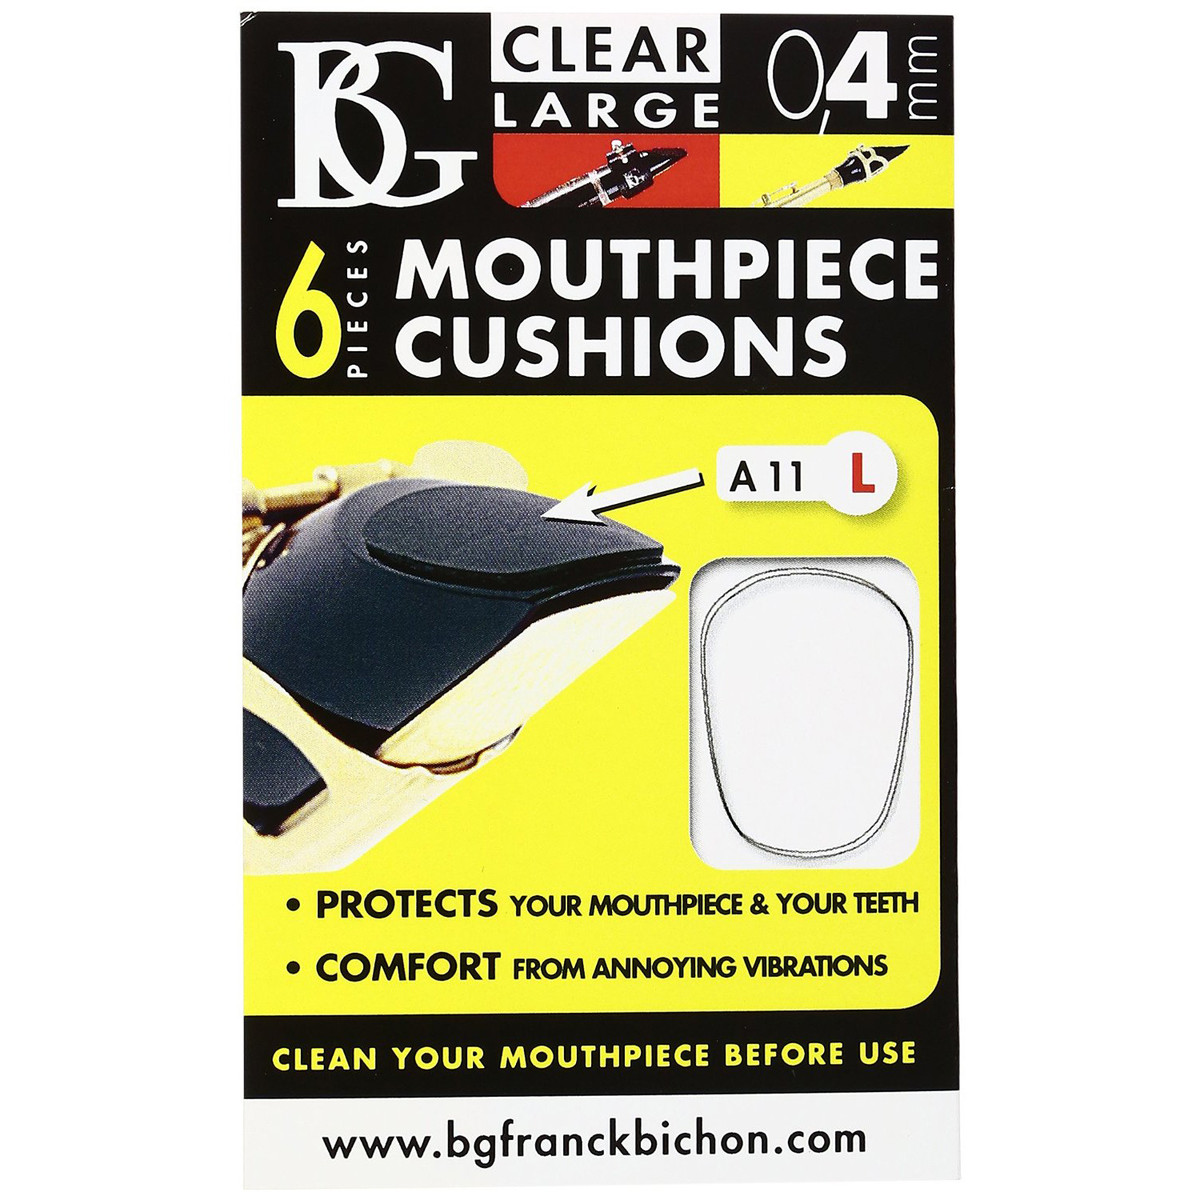 Image of BG Mouthpiece Cushion Sax and Clarinet Large 0.4mm (Pack Of 6)